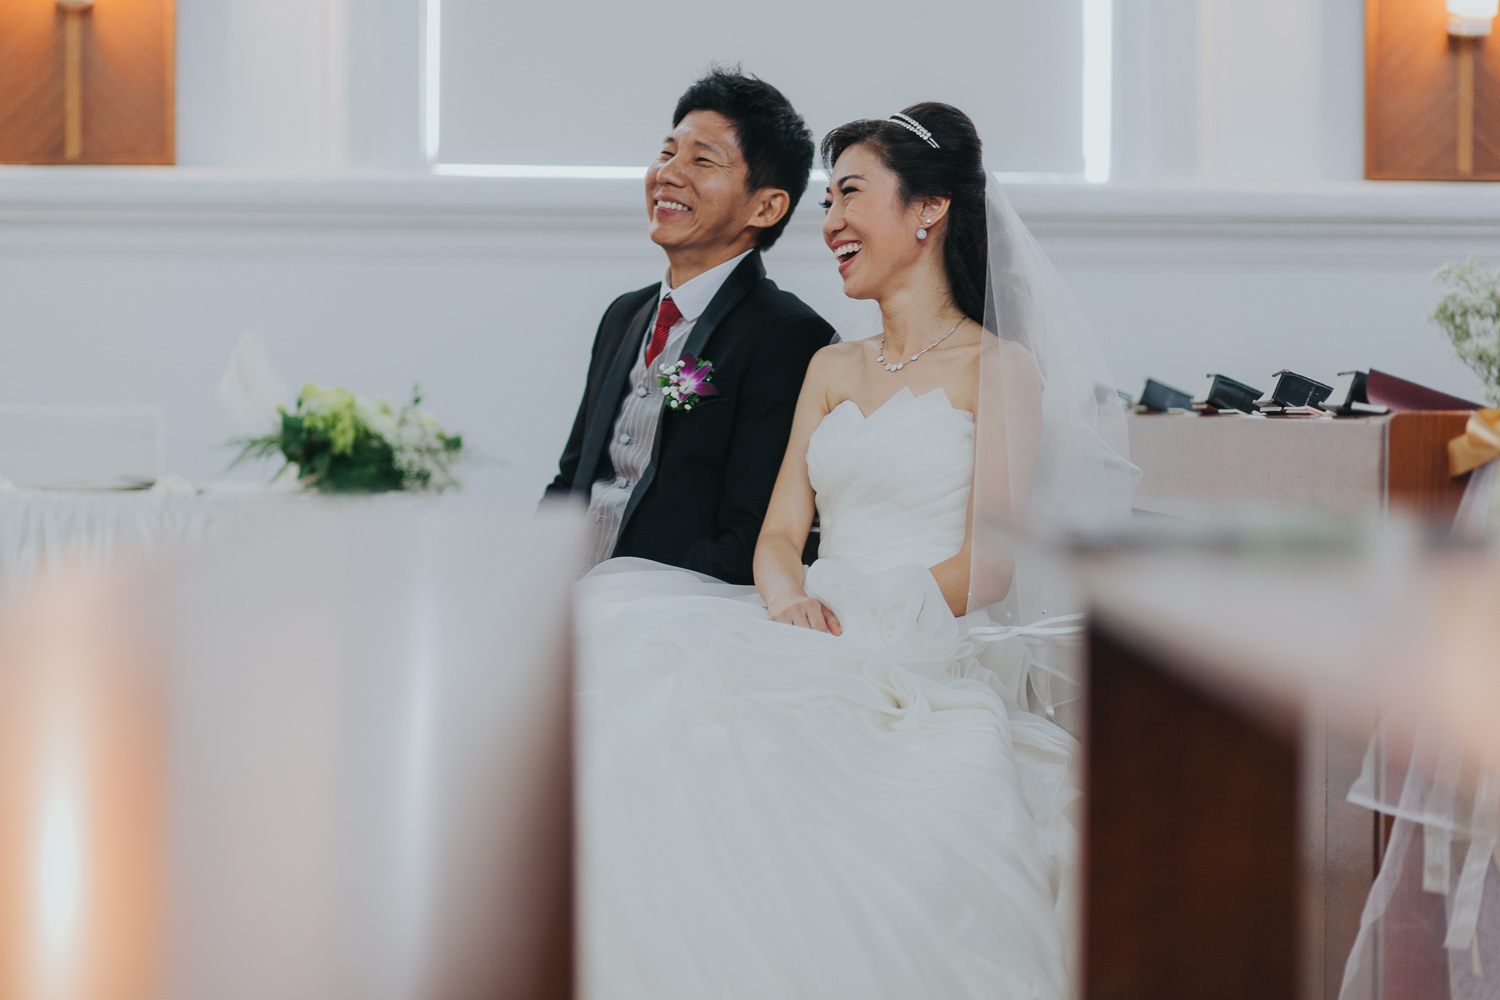 bittersweet photography Singapore wedding photographer jonathan 68